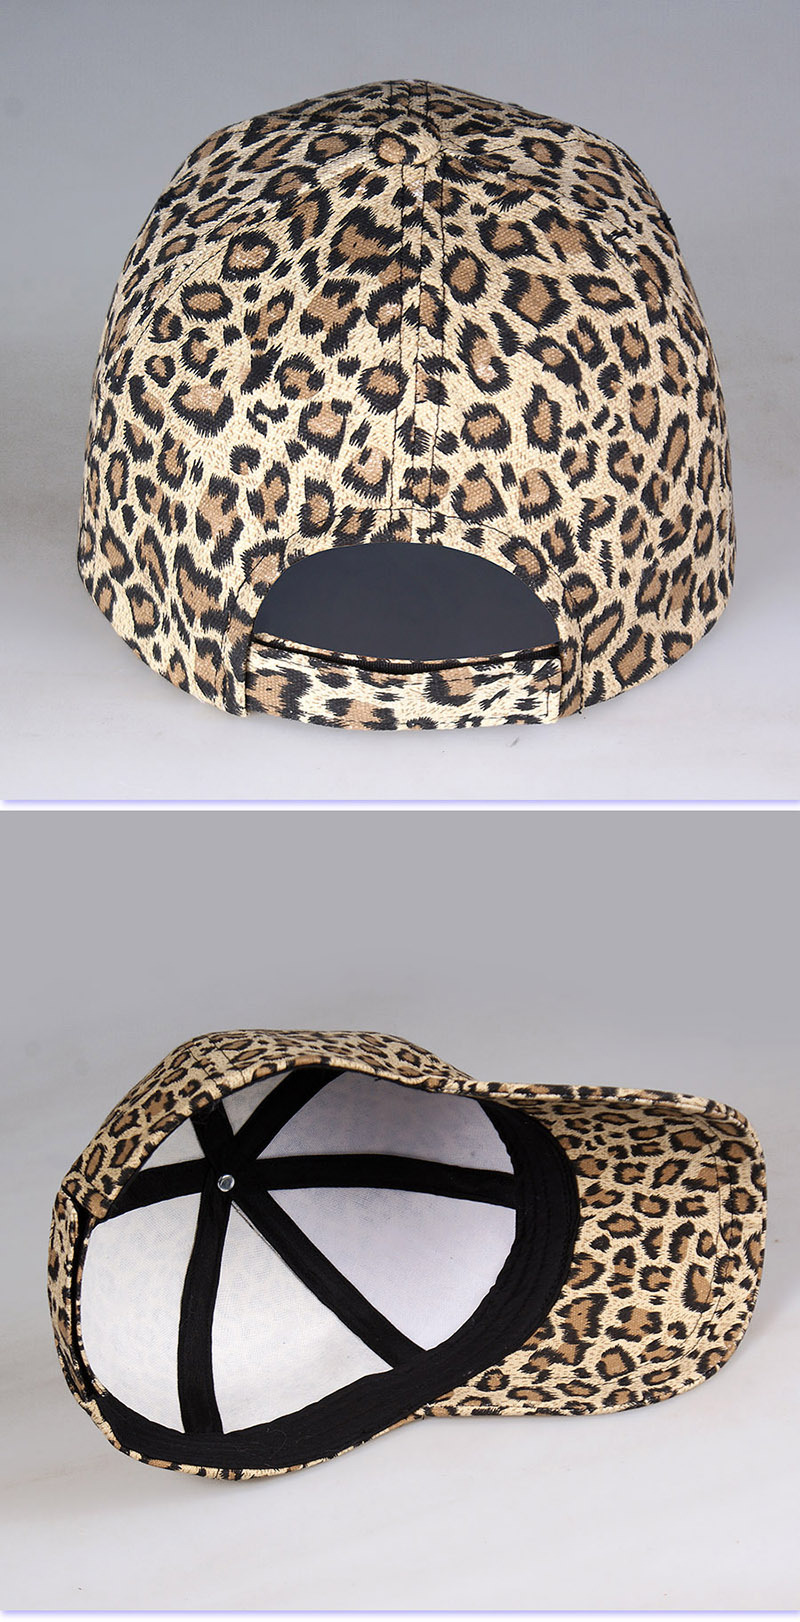 Leopard cap baseball cap man and woman (6)